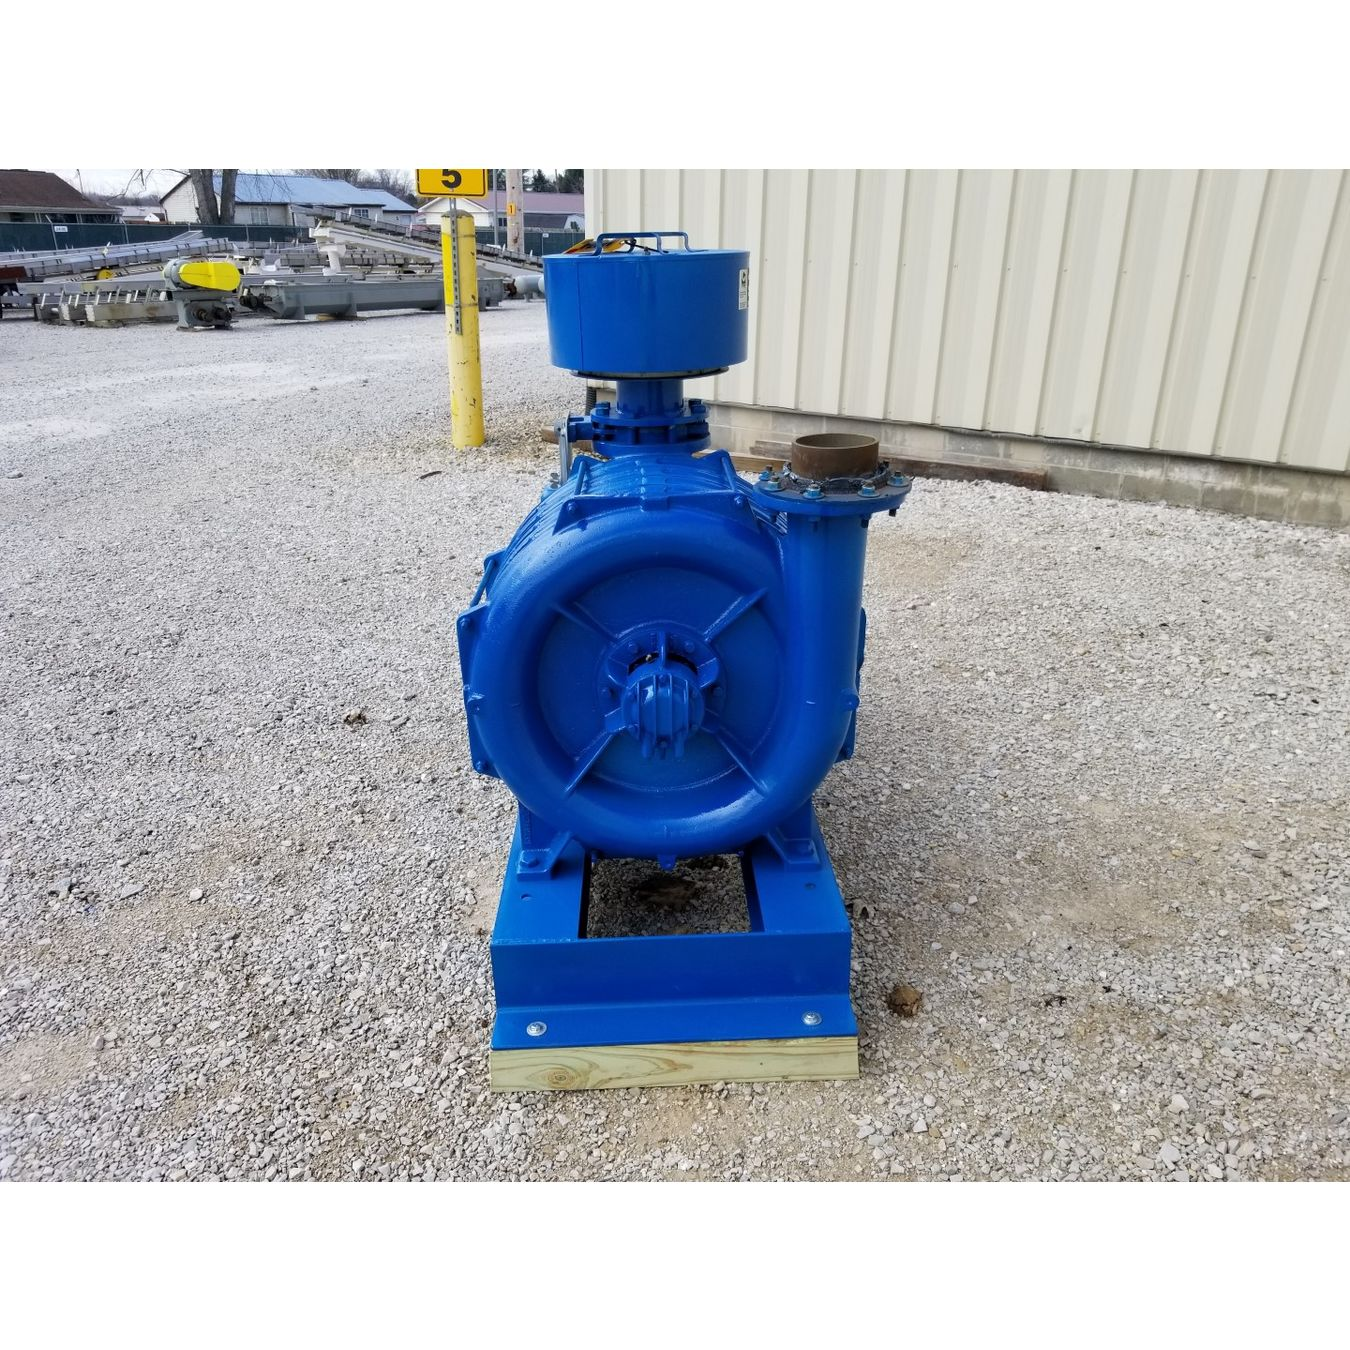 Centrifugal Blower Product : Hp used lamson multistage centrifugal blower exhauster